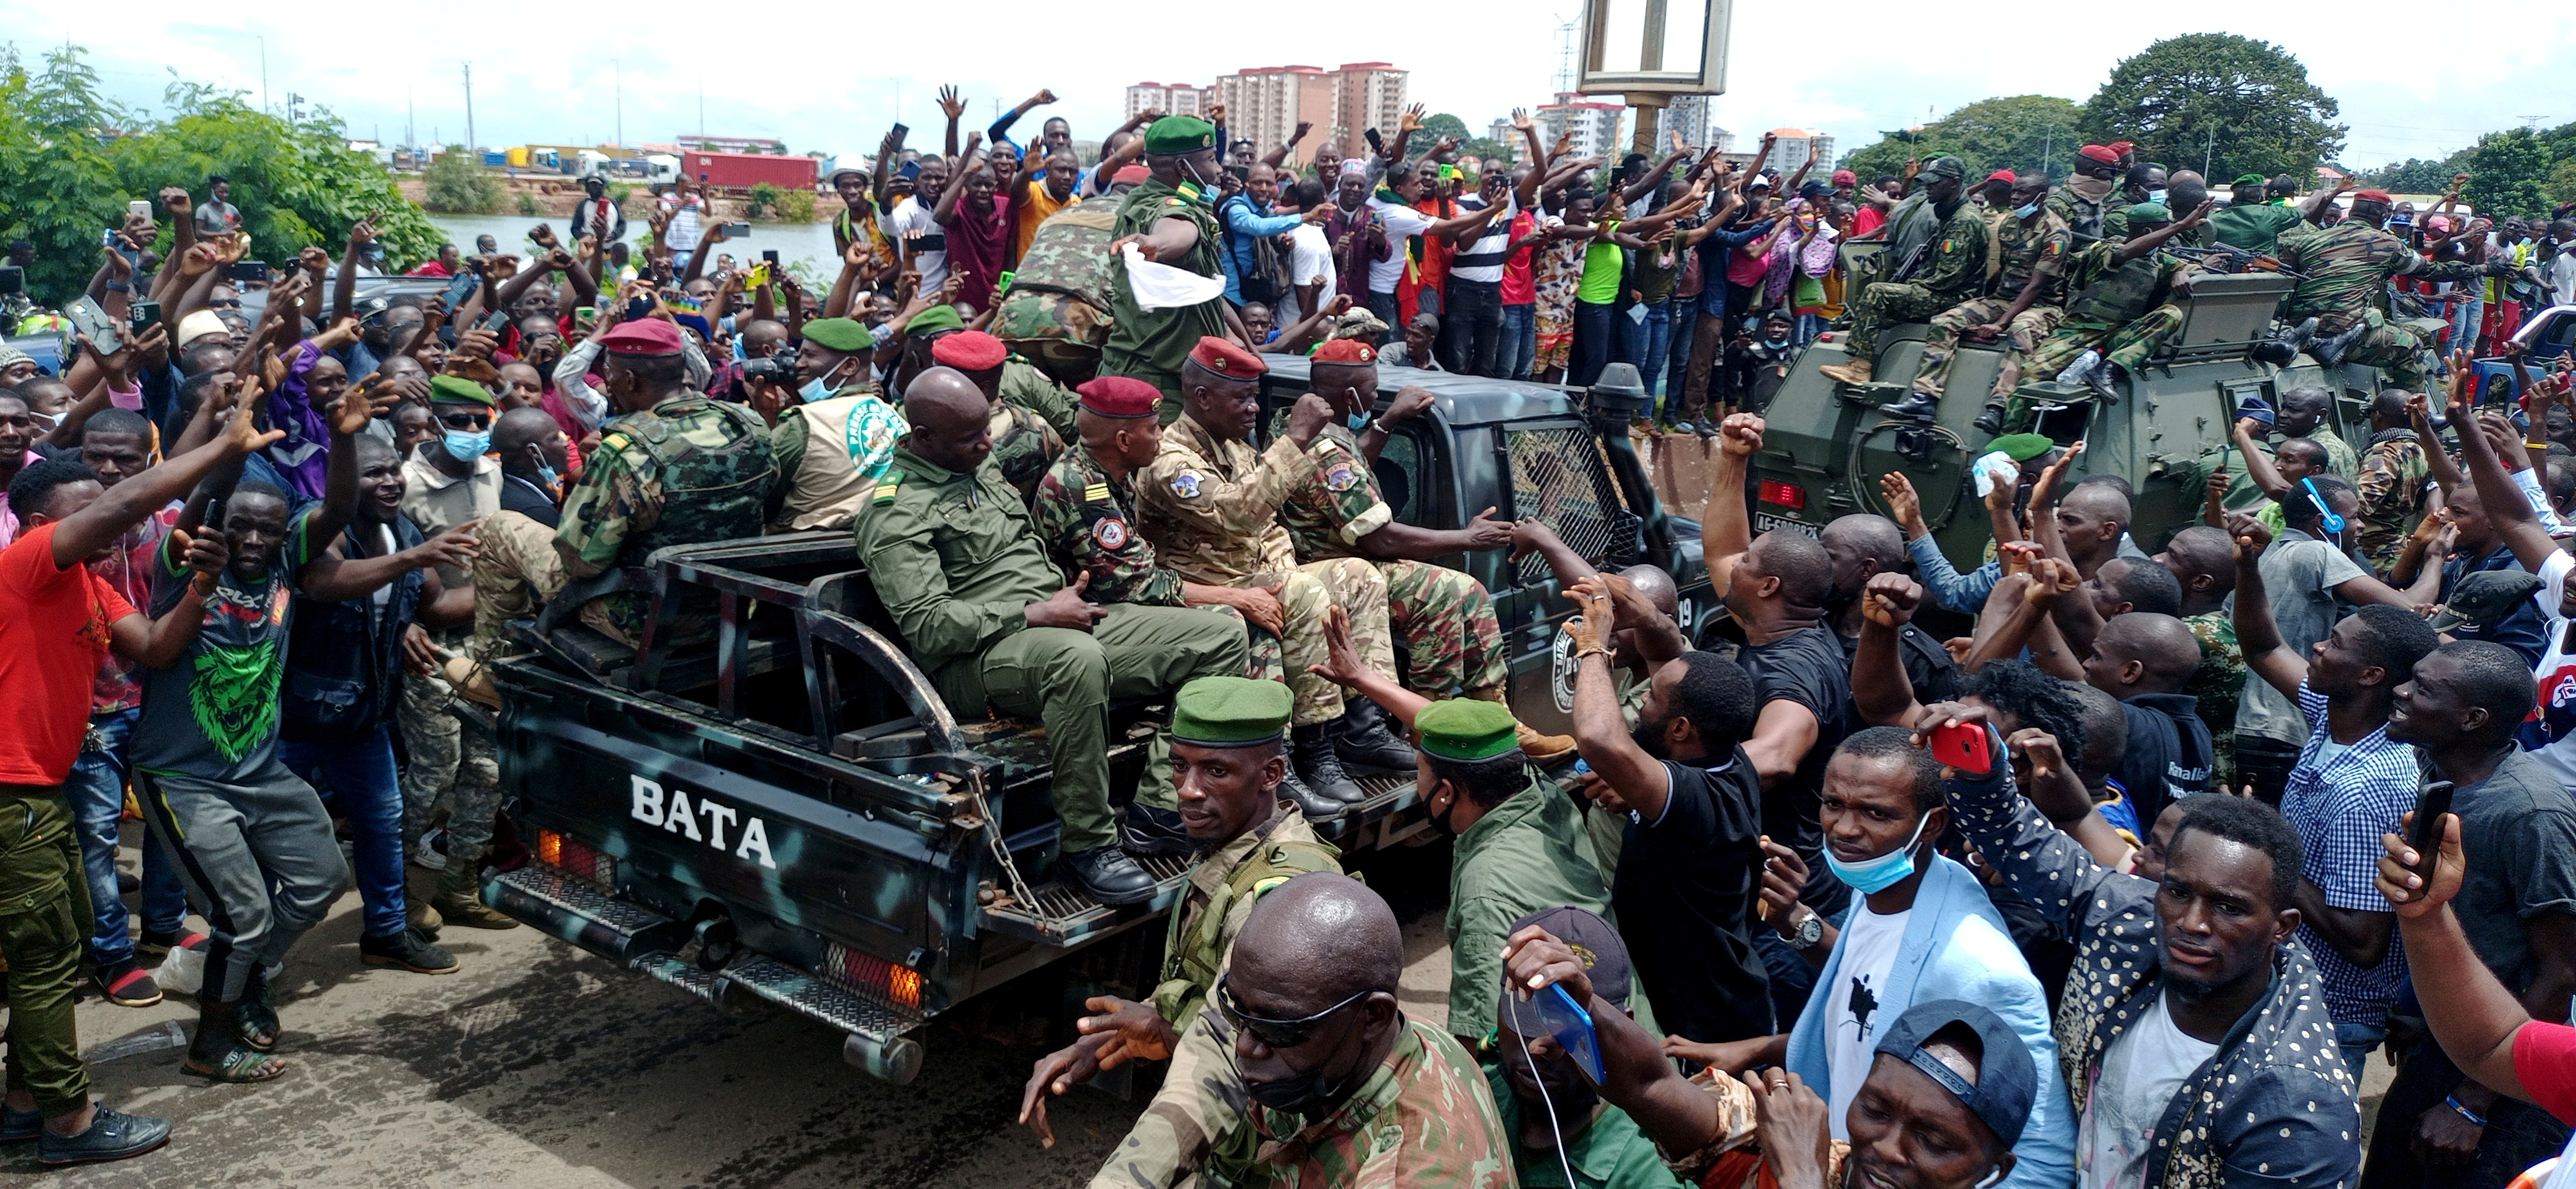 Residents cheer on army soldiers after the uprising that led to the toppling of president Alpha Conde in Kaloum neighbourhood of Conakry, Guinea September 6, 2021 REUTERS/Souleymane Camara NO RESALES. NO ARCHIVES